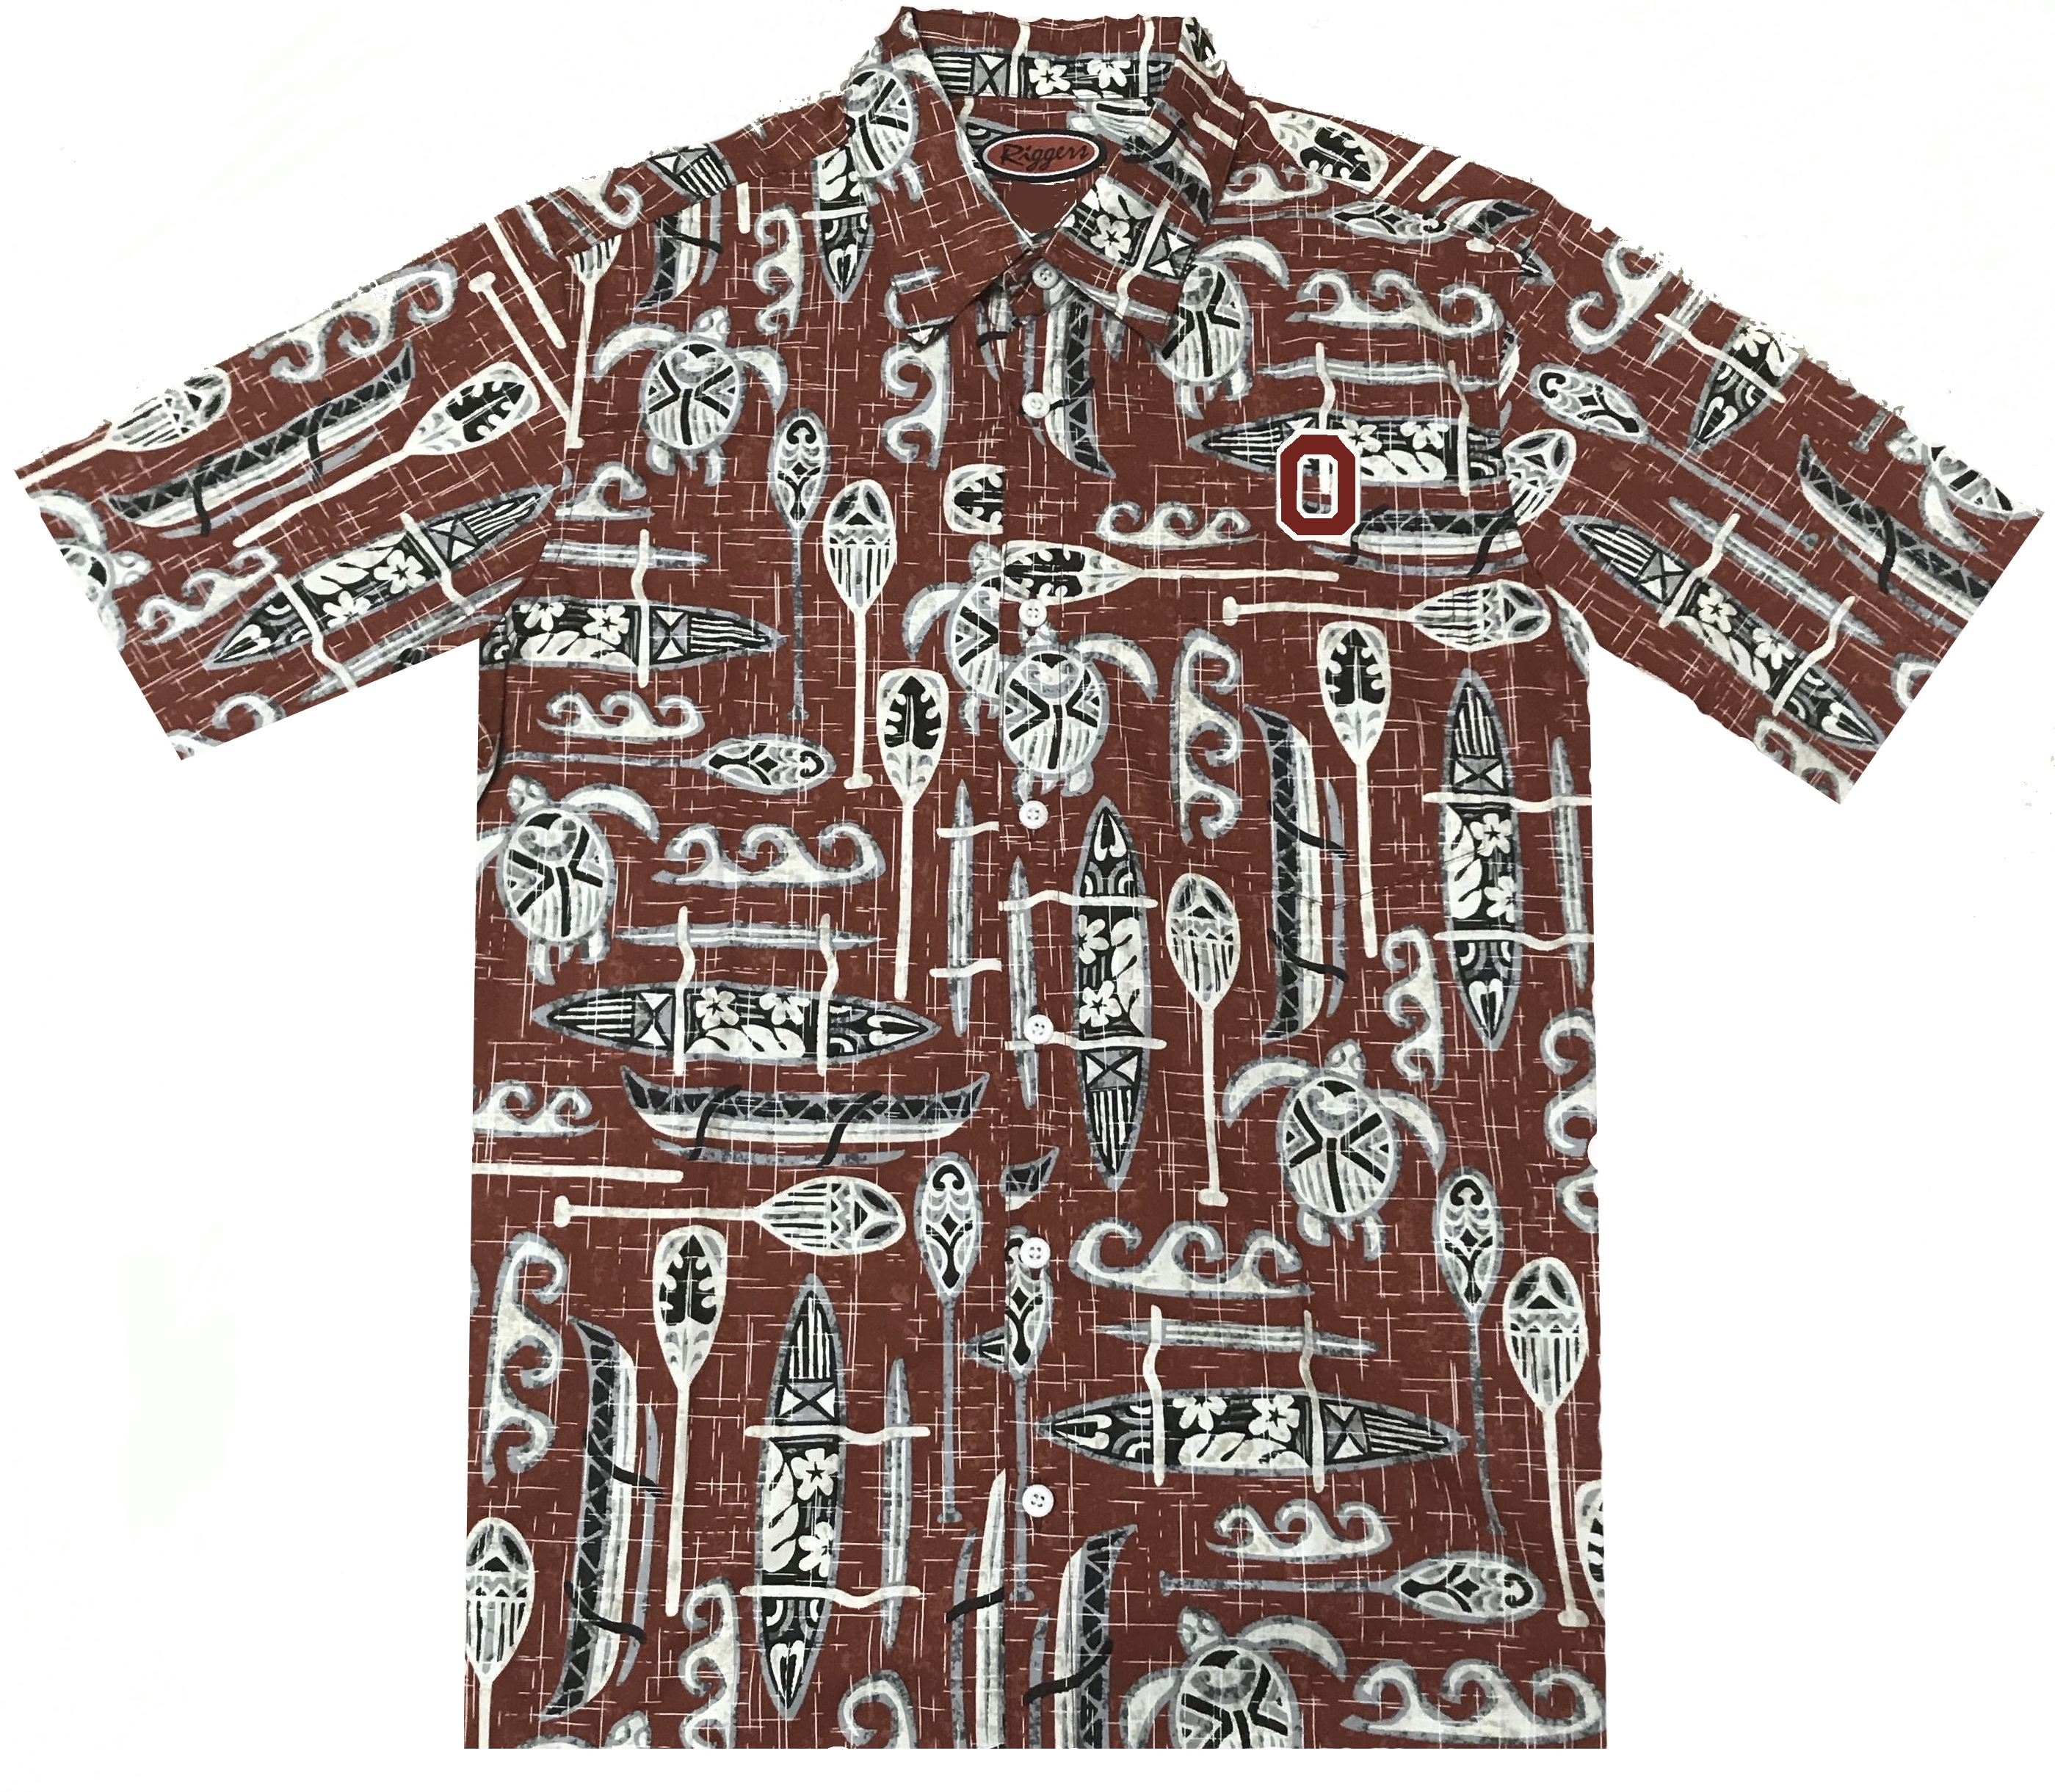 competitive price d0b08 034fc NEW SEASON ALOHA SHIRT SALE – ONLY $45! | OSU Alumni Club of ...